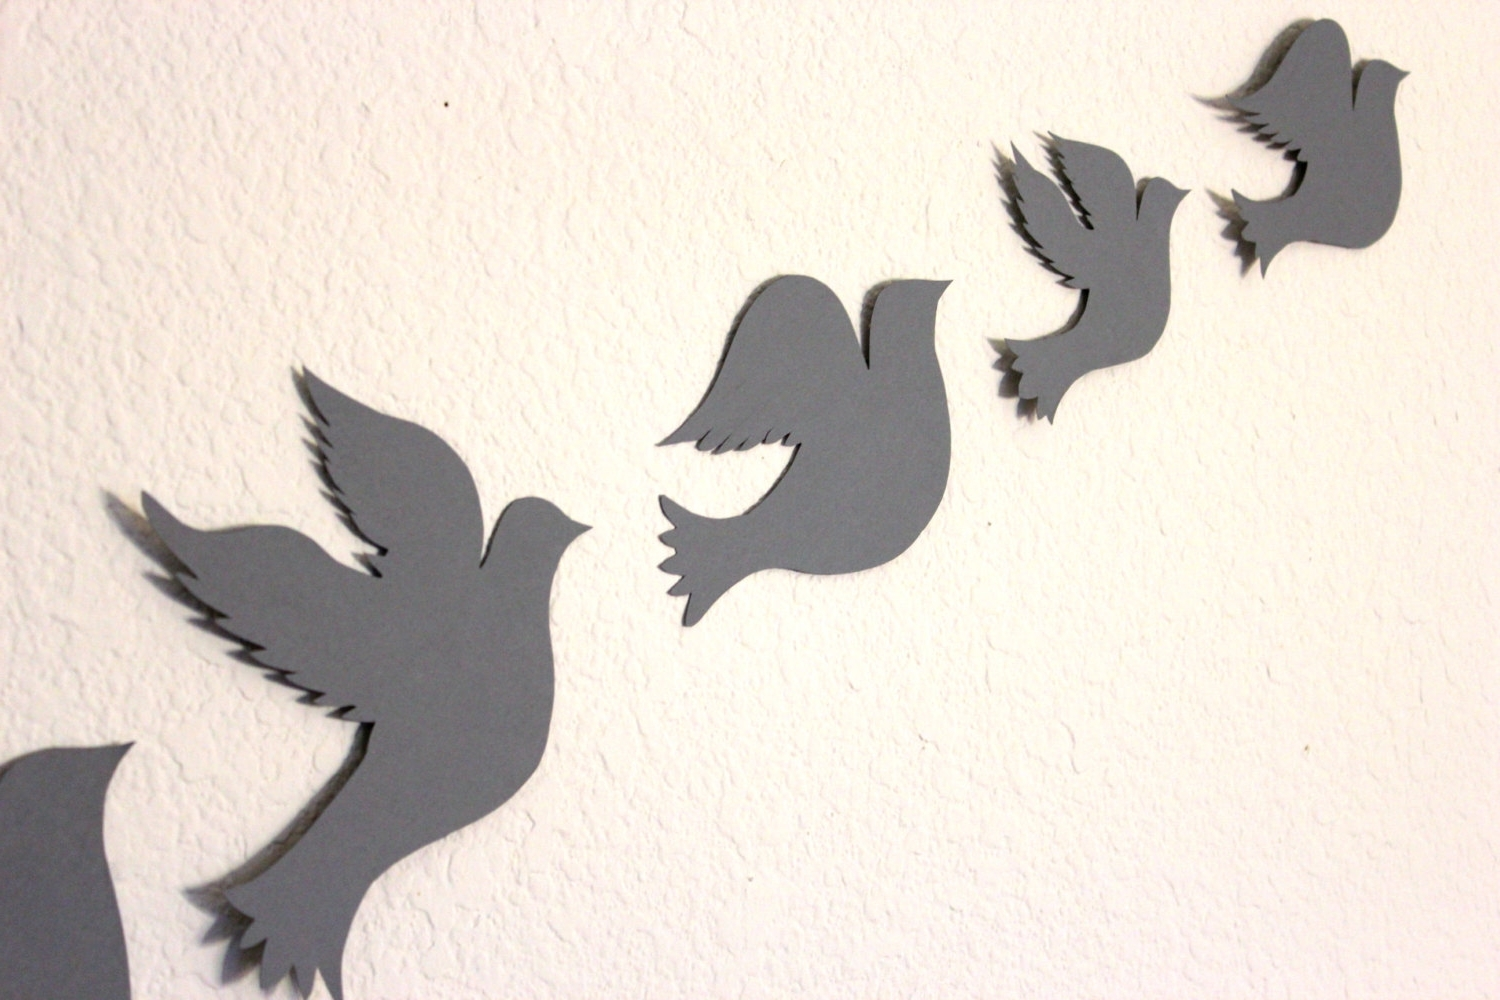 Fashionable 3d Birds Wall Art Popular Items For 3d Bird Wall Art On Etsy, 3d Inside 3d Wall Art Etsy (View 3 of 15)